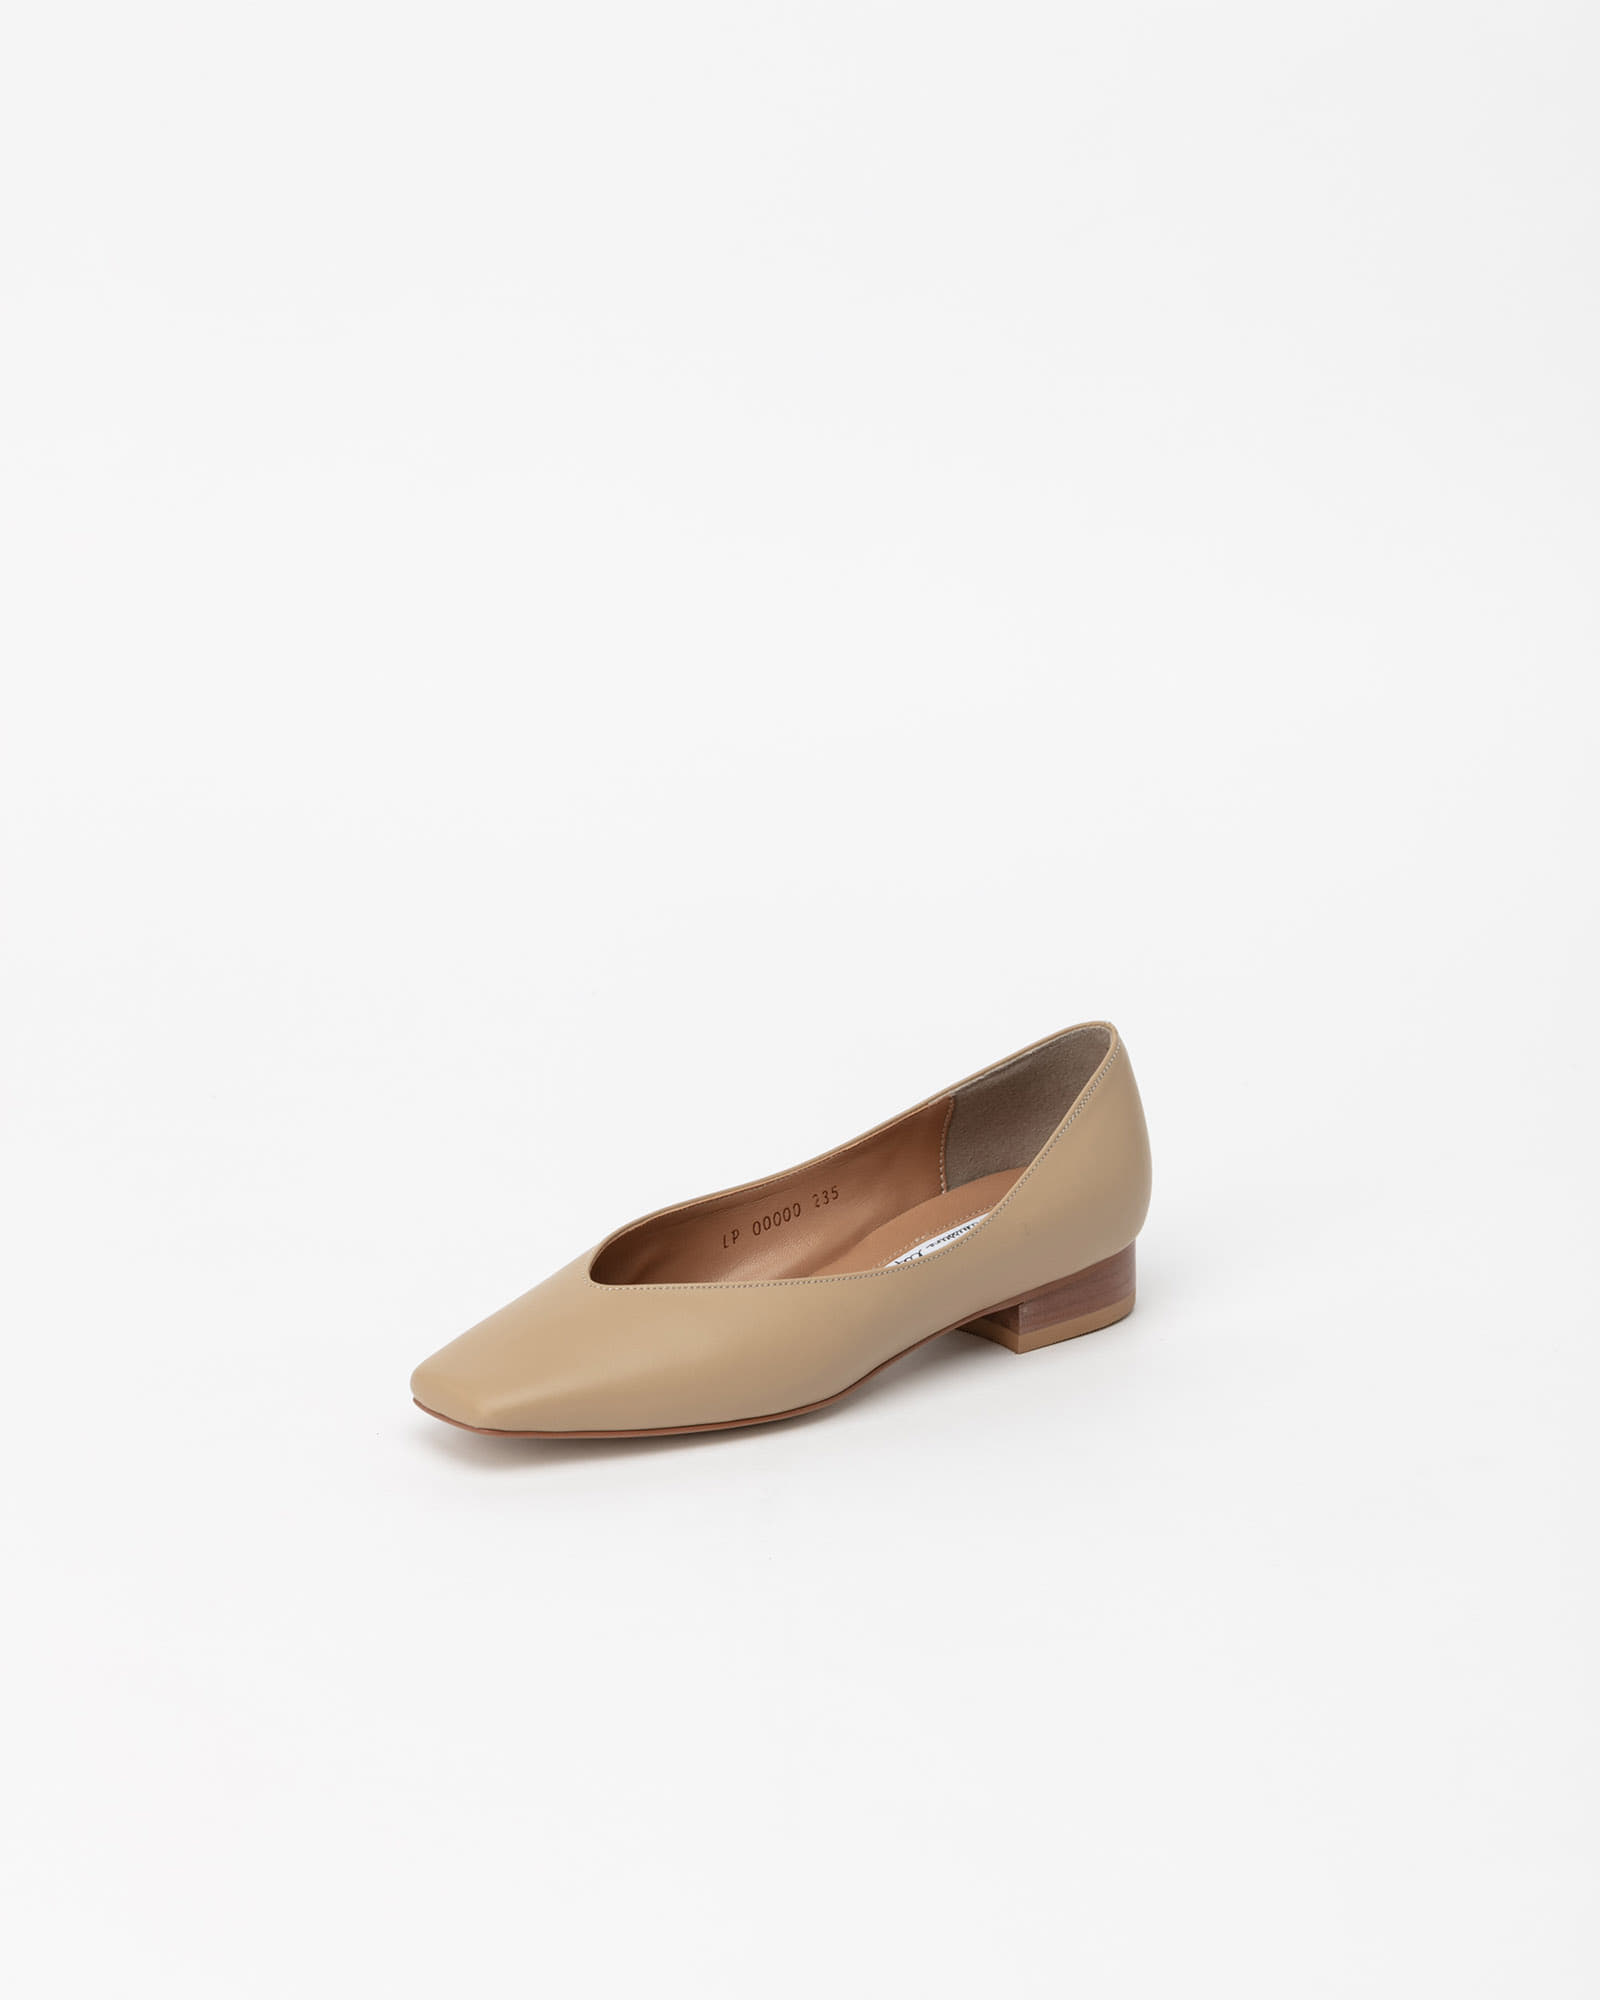 Purin Flat Shoes in Down Yellow Beige